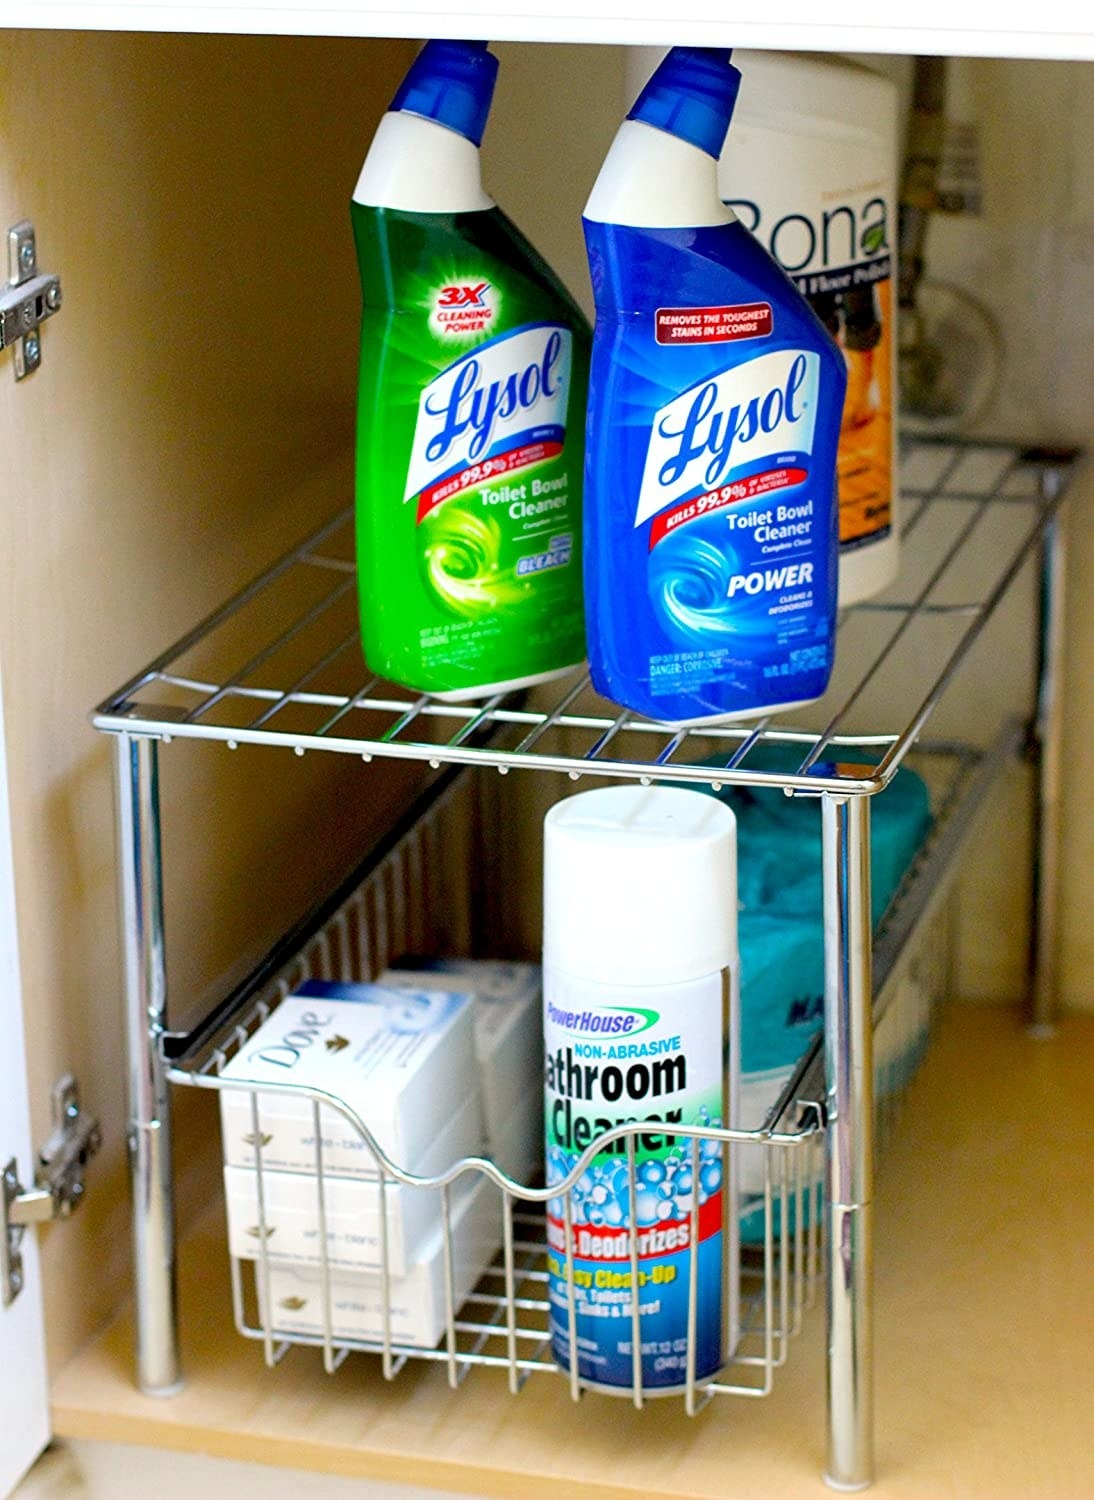 A metal rack with a small basket the bottom that has soap and cleaning products in it There are cleaning products stacked on top of it too